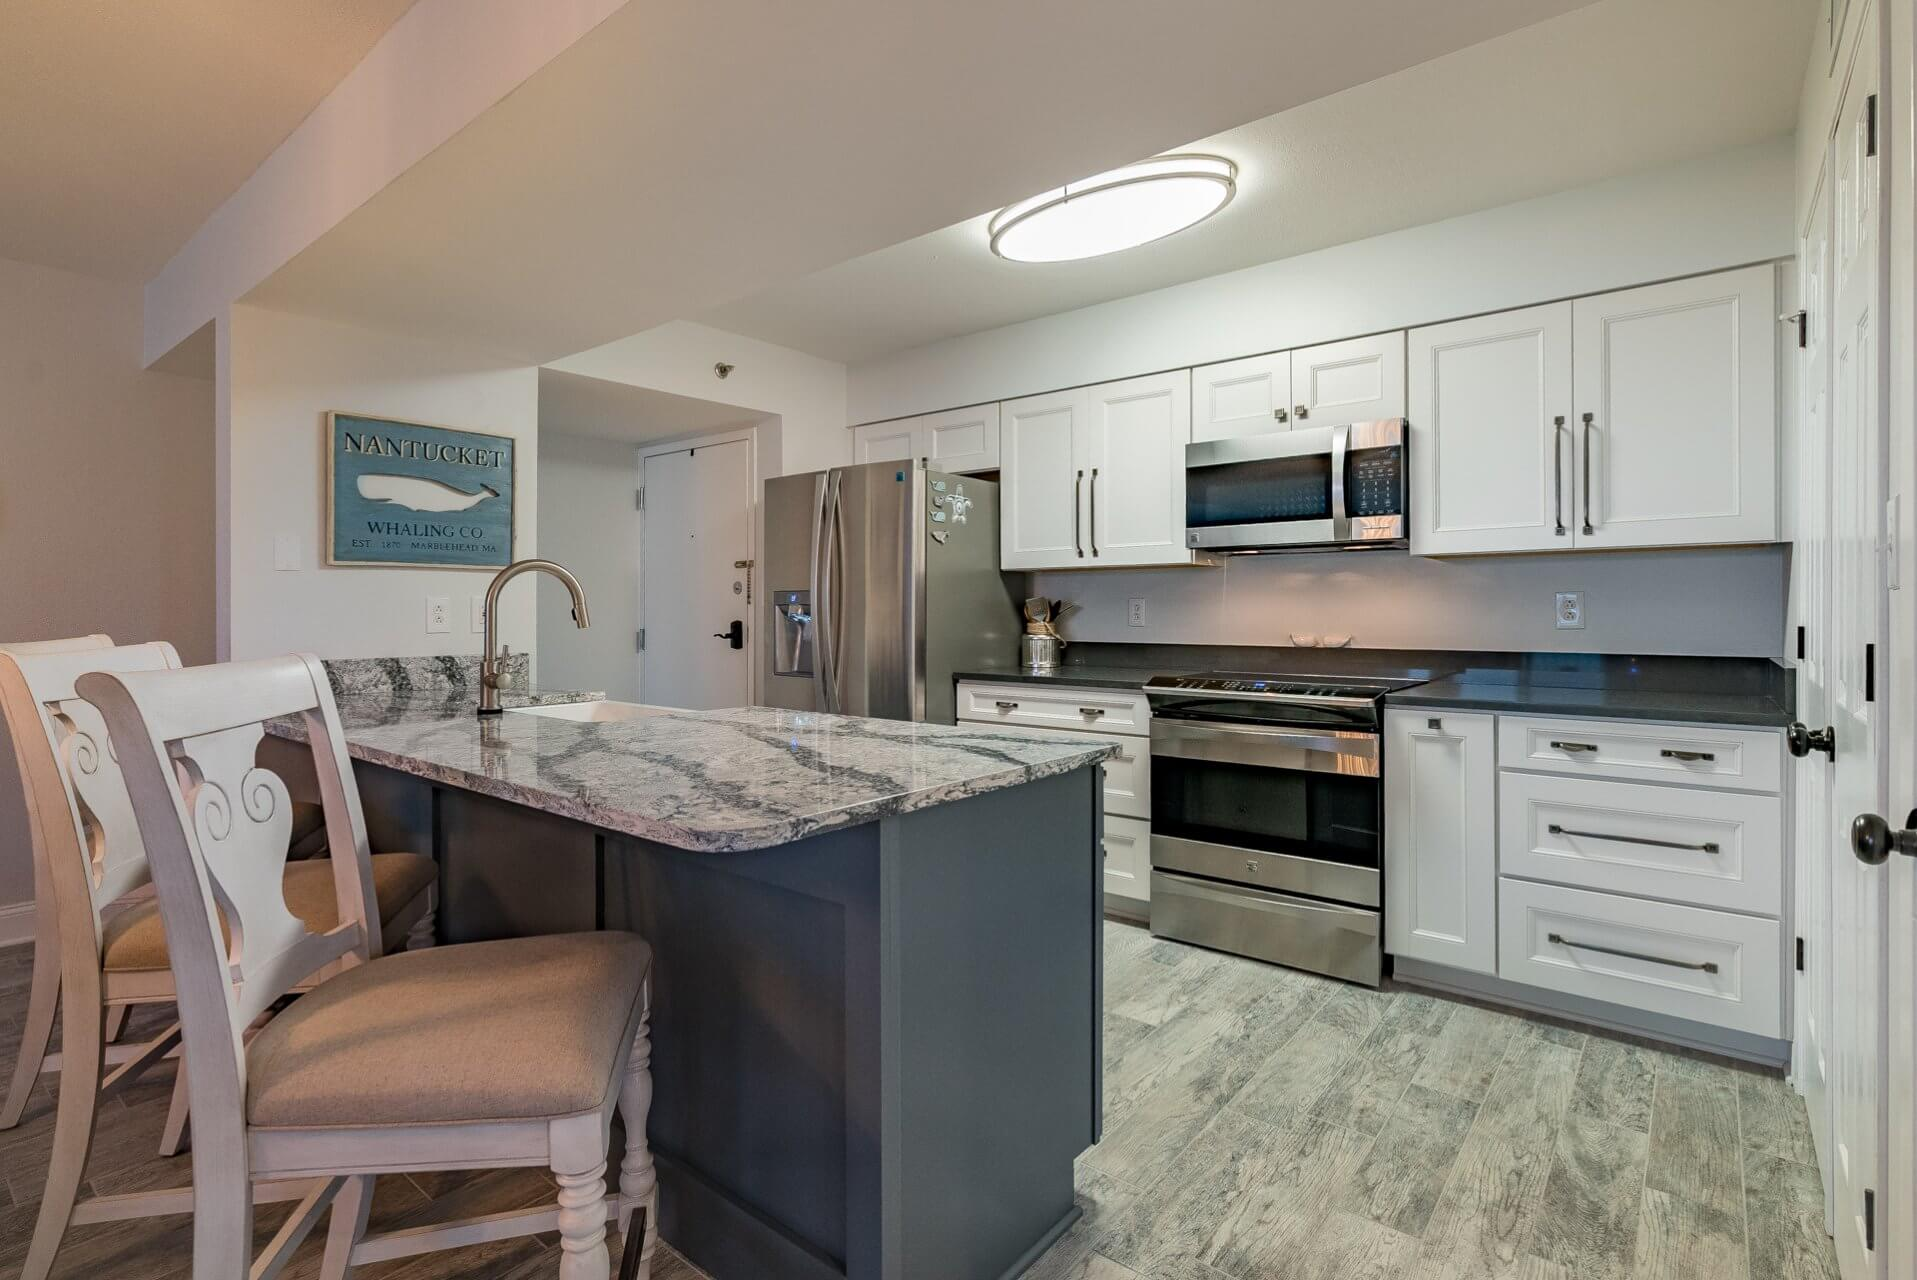 Best Kitchen Gallery: Jimmy And Joy Kitchen And Bathroom Remodel Cabi Depot  Of Kitchen Cabinet